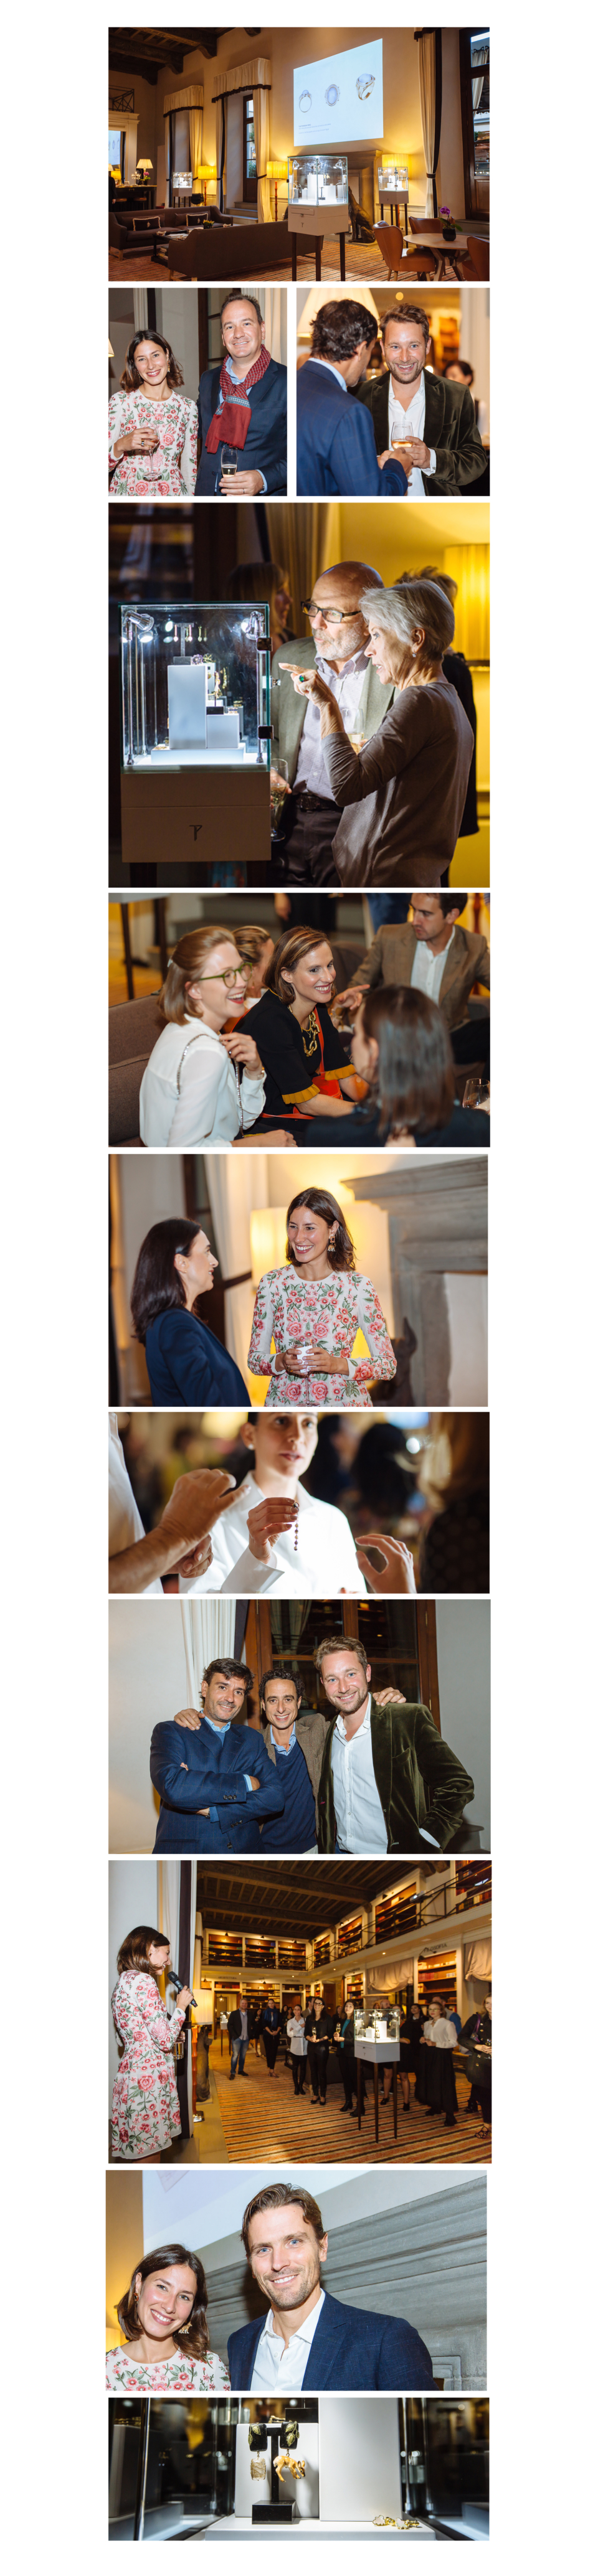 Palazzo tornabuoni x Tessa Packard London Launch Party